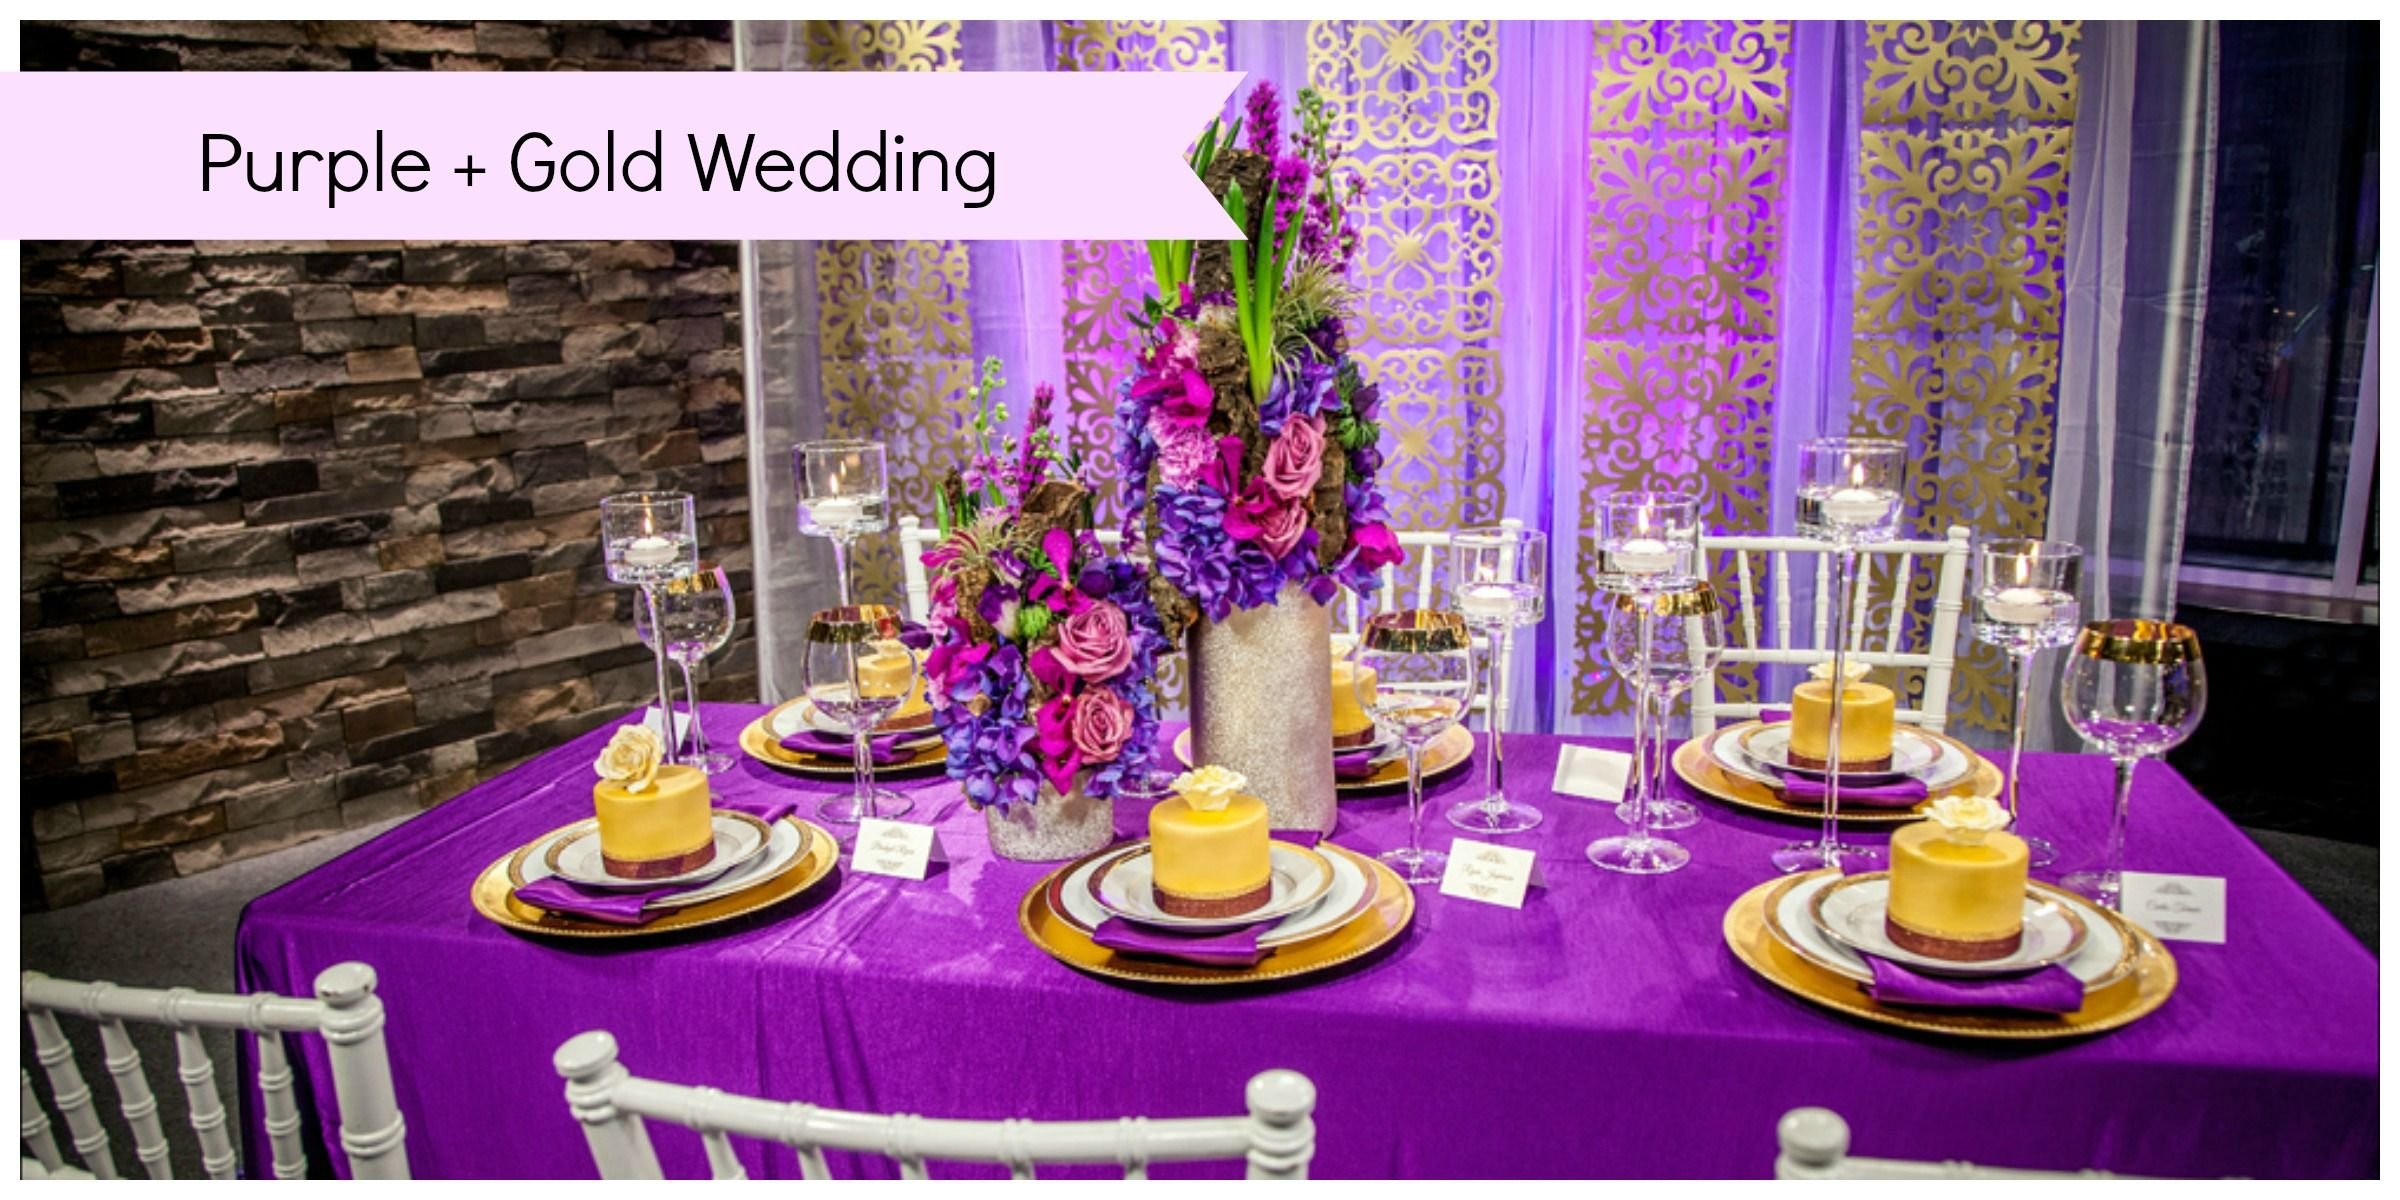 purple and gold wedding I adore this purple and gold wedding It is such a beautiful decor